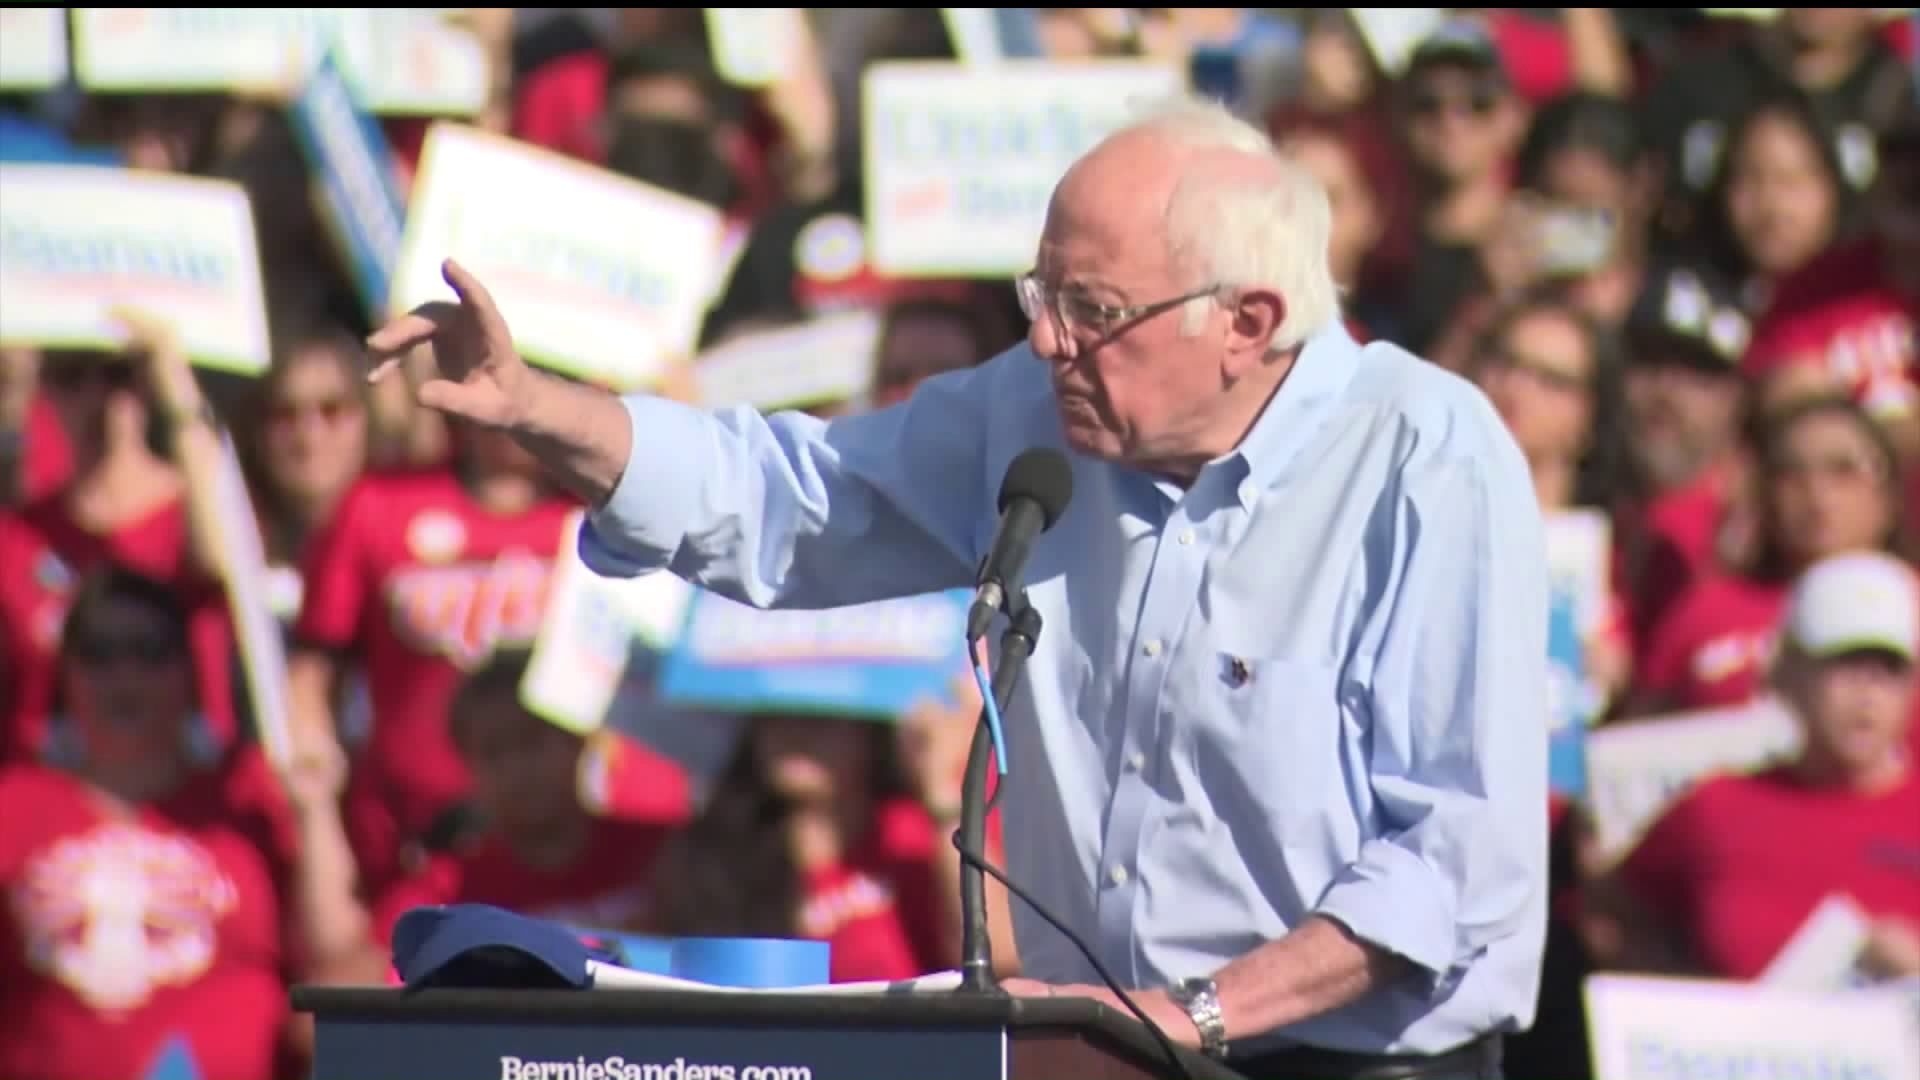 Senator Bernie Sanders speaks at a rally in El Sereno on Nov. 16, 2019. (Credit: KTLA)